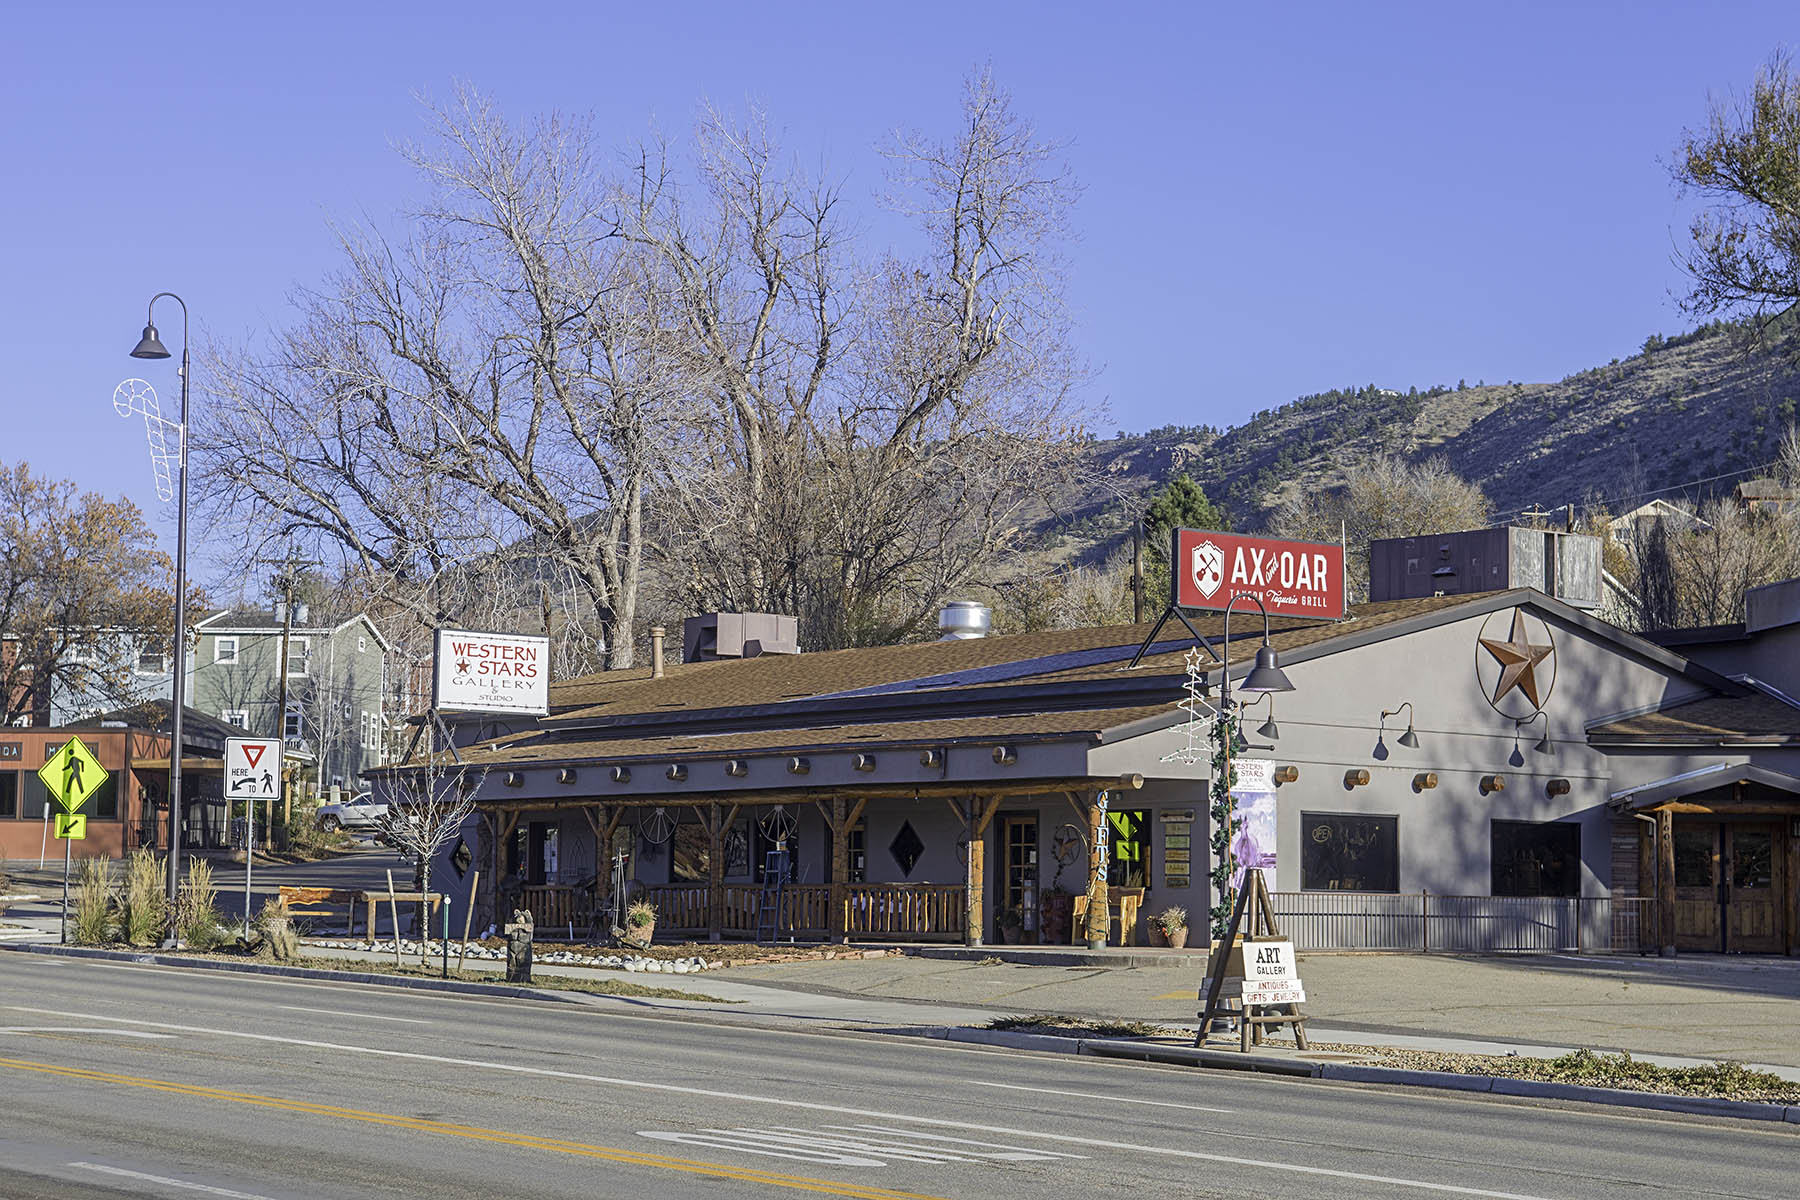 Western Stars Gallery & Studio shares a timber & adobe building with the Lyons Den Restaurant & Taphouse (formerly The Quarry) at 160 East Main Street in the small but mighty franchise-free town of Lyons, Colorado.